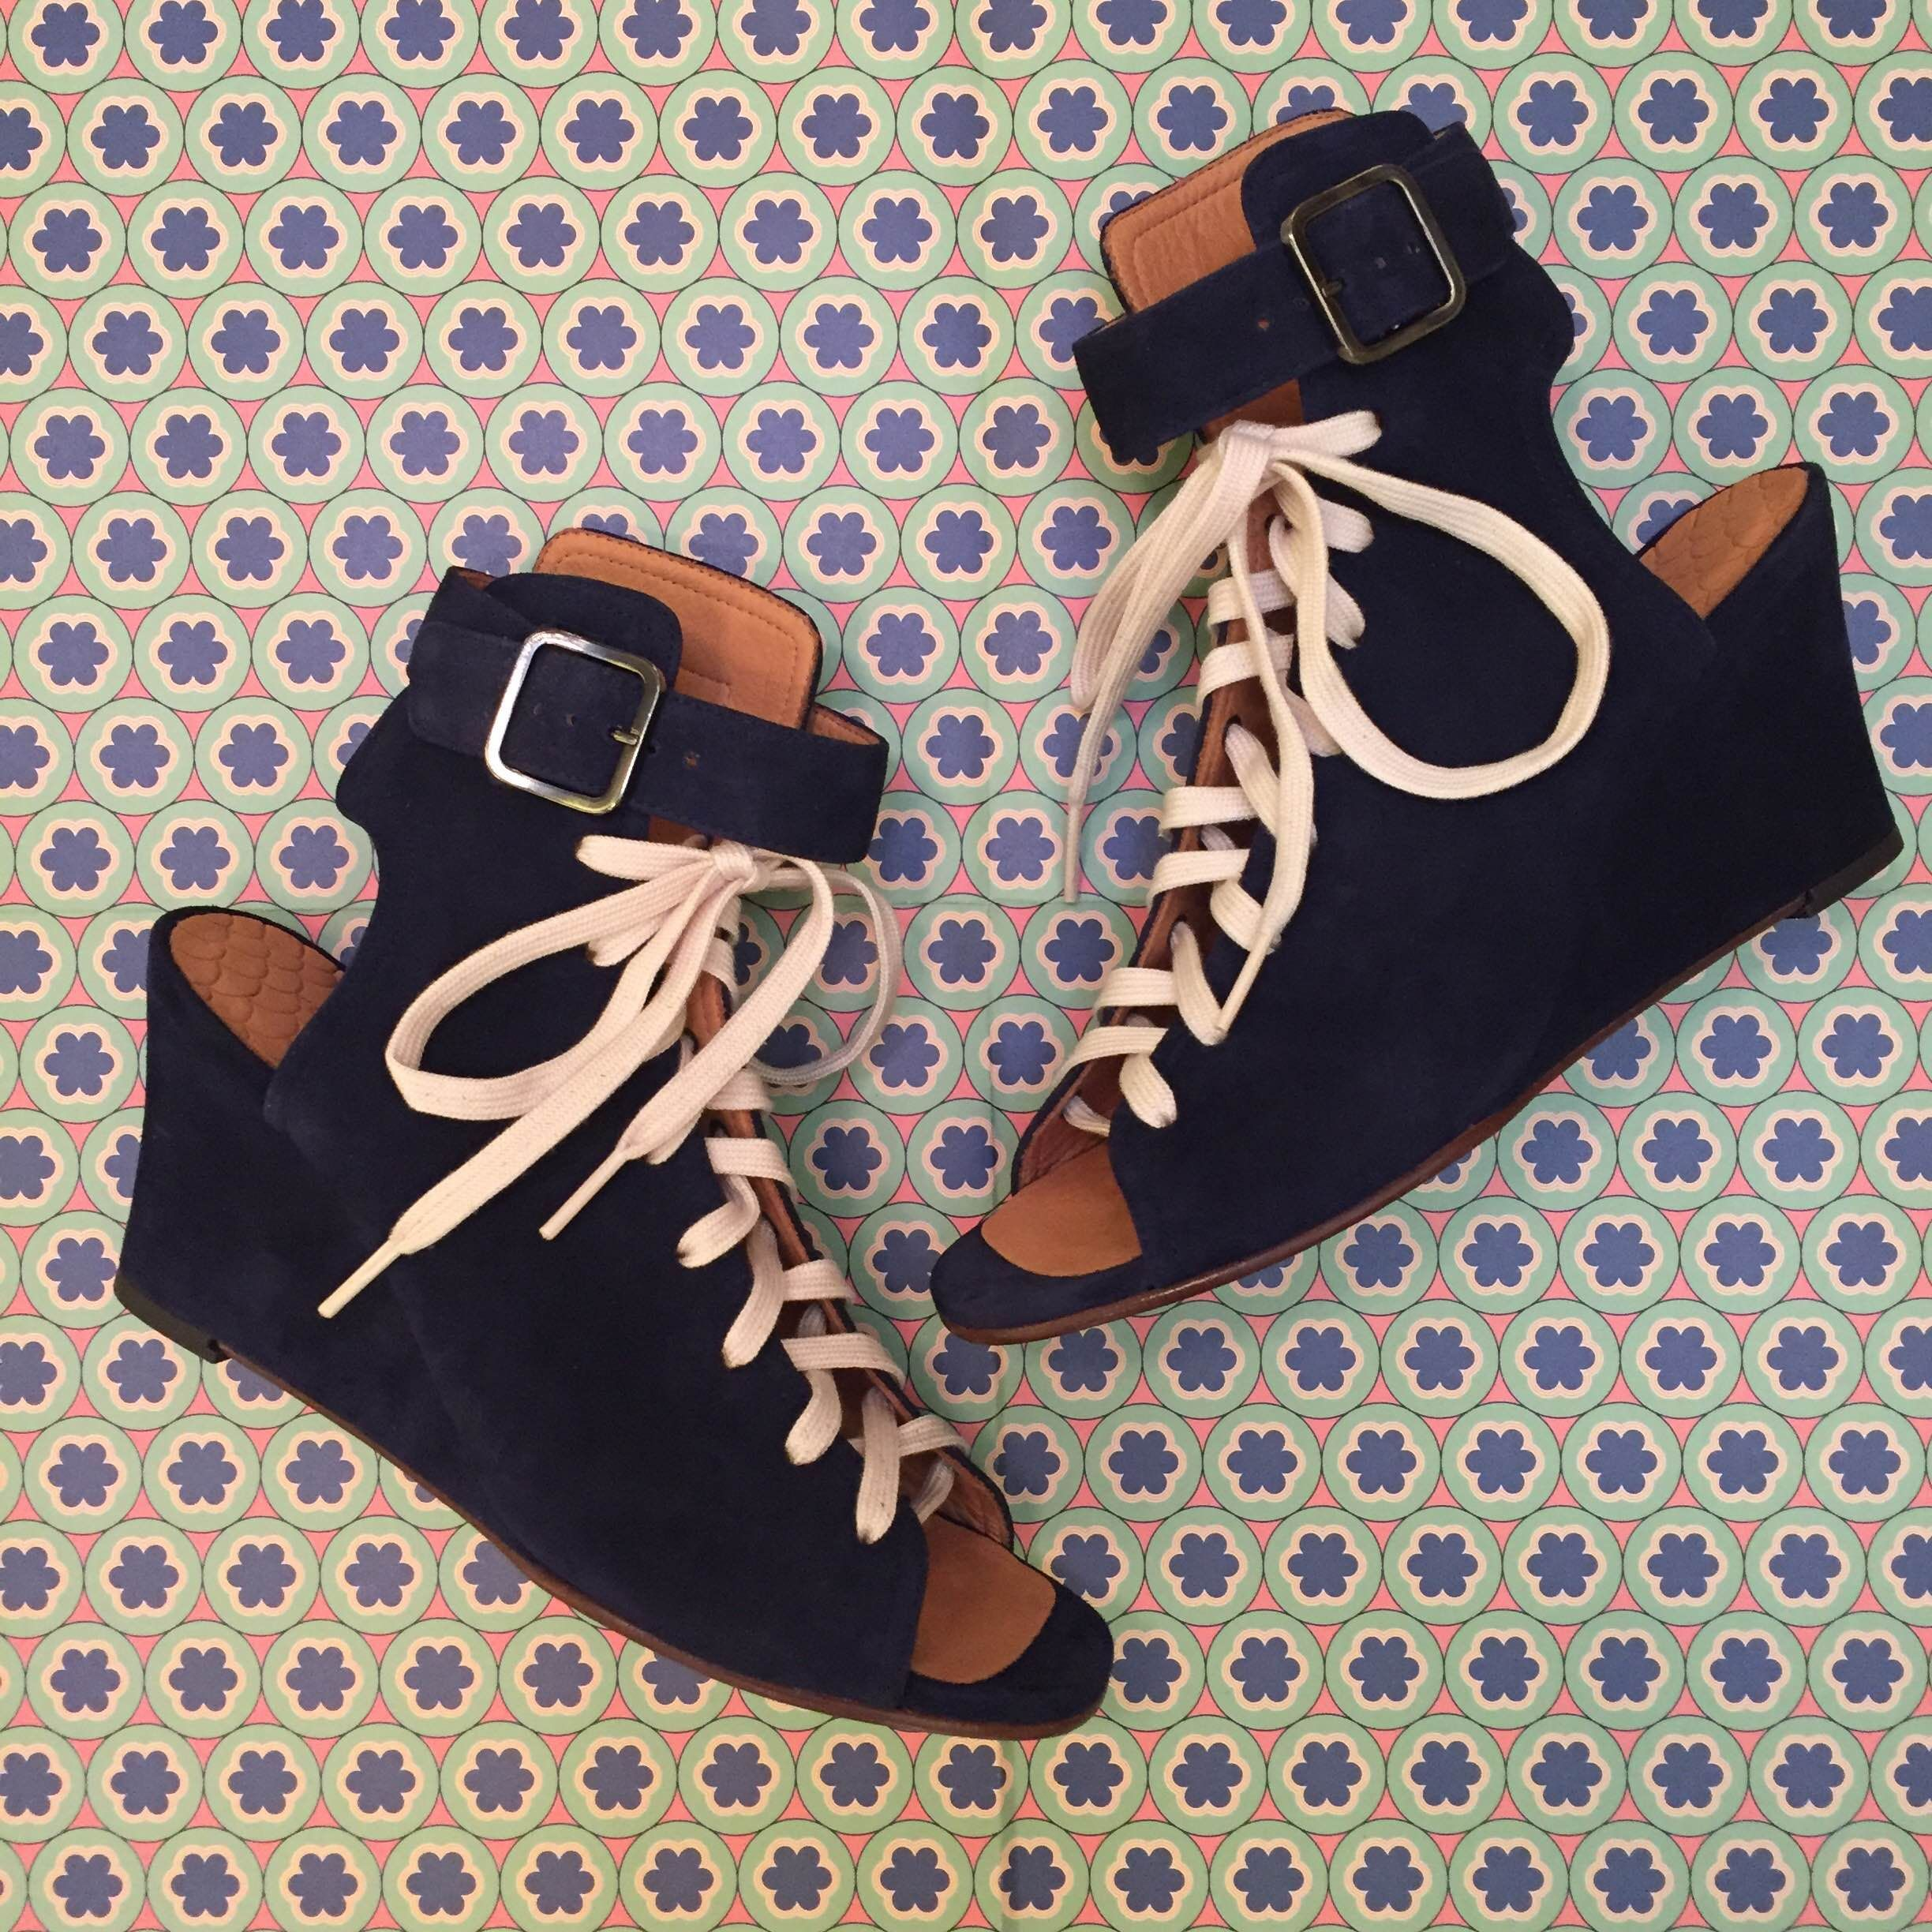 Wait and See presents CHIE MIHARA shoes #DontForgetToPlay